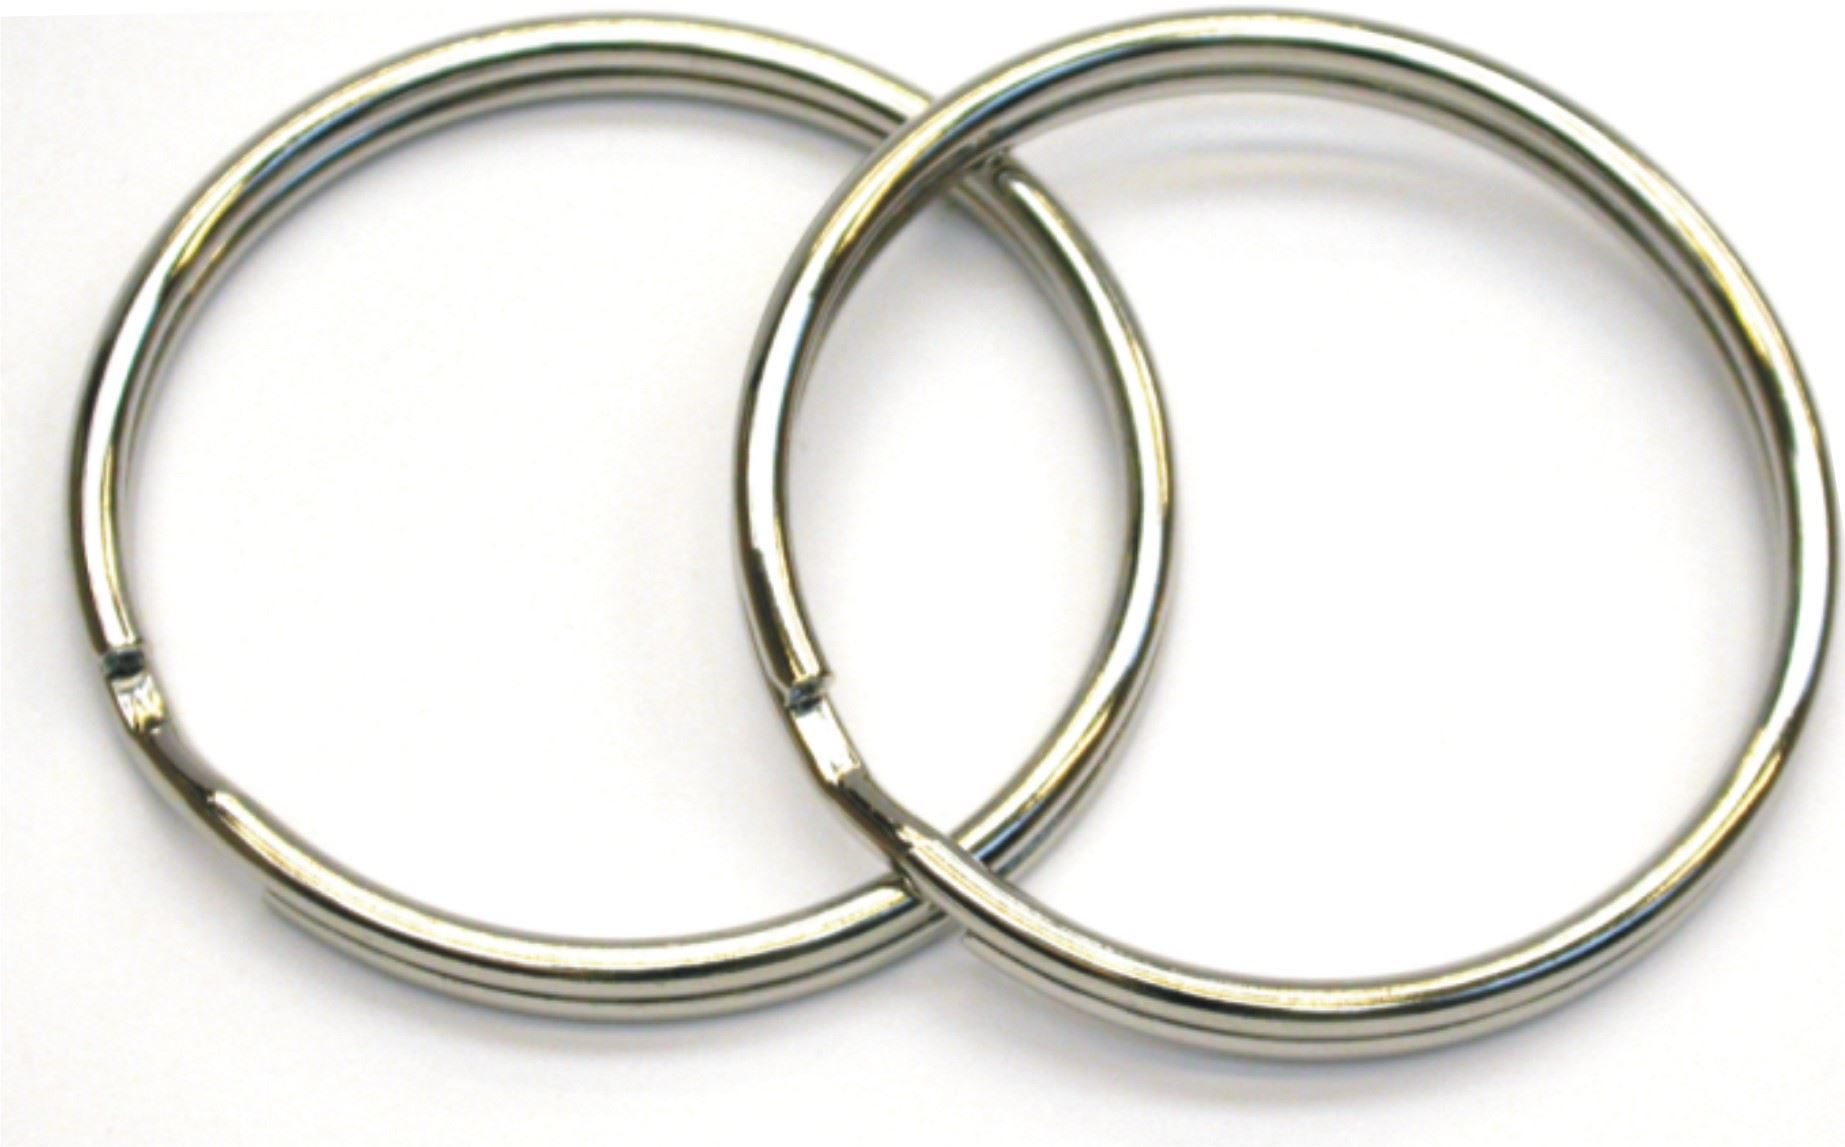 SPLIT RINGS STAINLESS Ø 38 MM 2 stk thumbnail